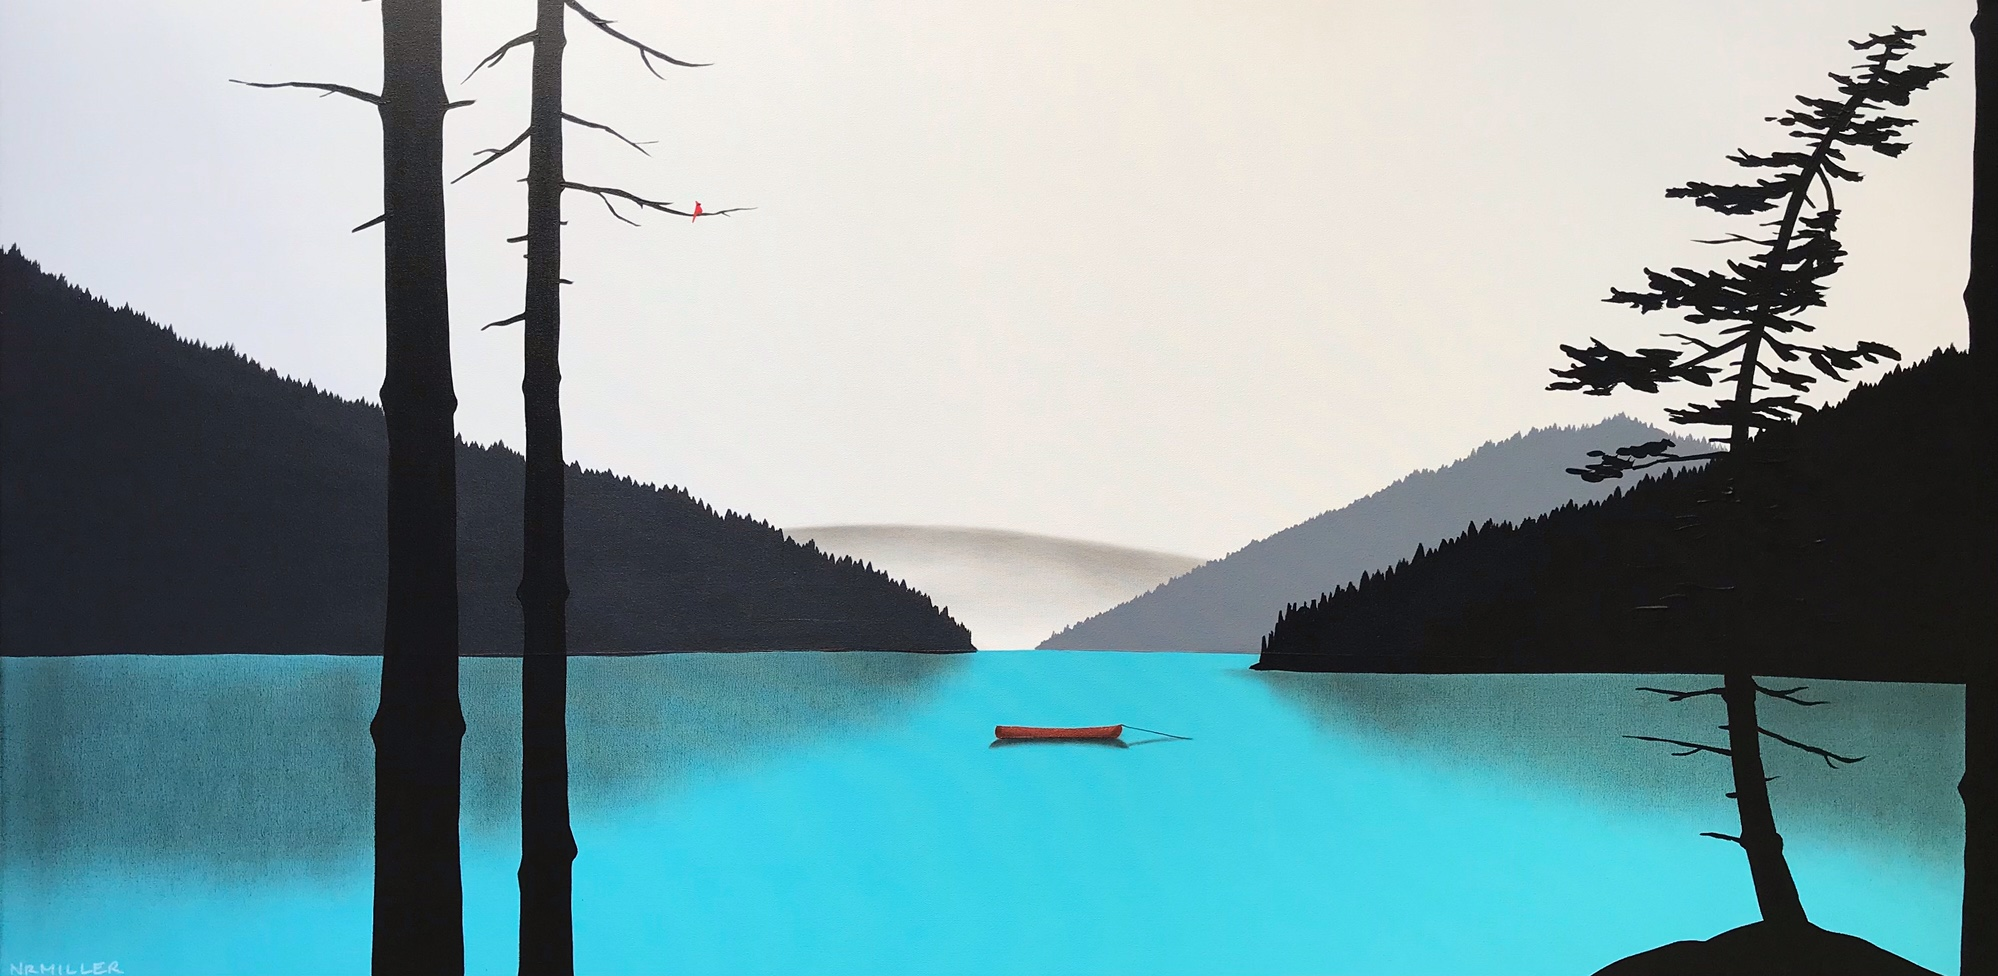 To Dream a Dream of You too, mixed media landscape painting by Natasha Miller | Effusion Art Gallery + Cast Glass Studio, Invermere BC